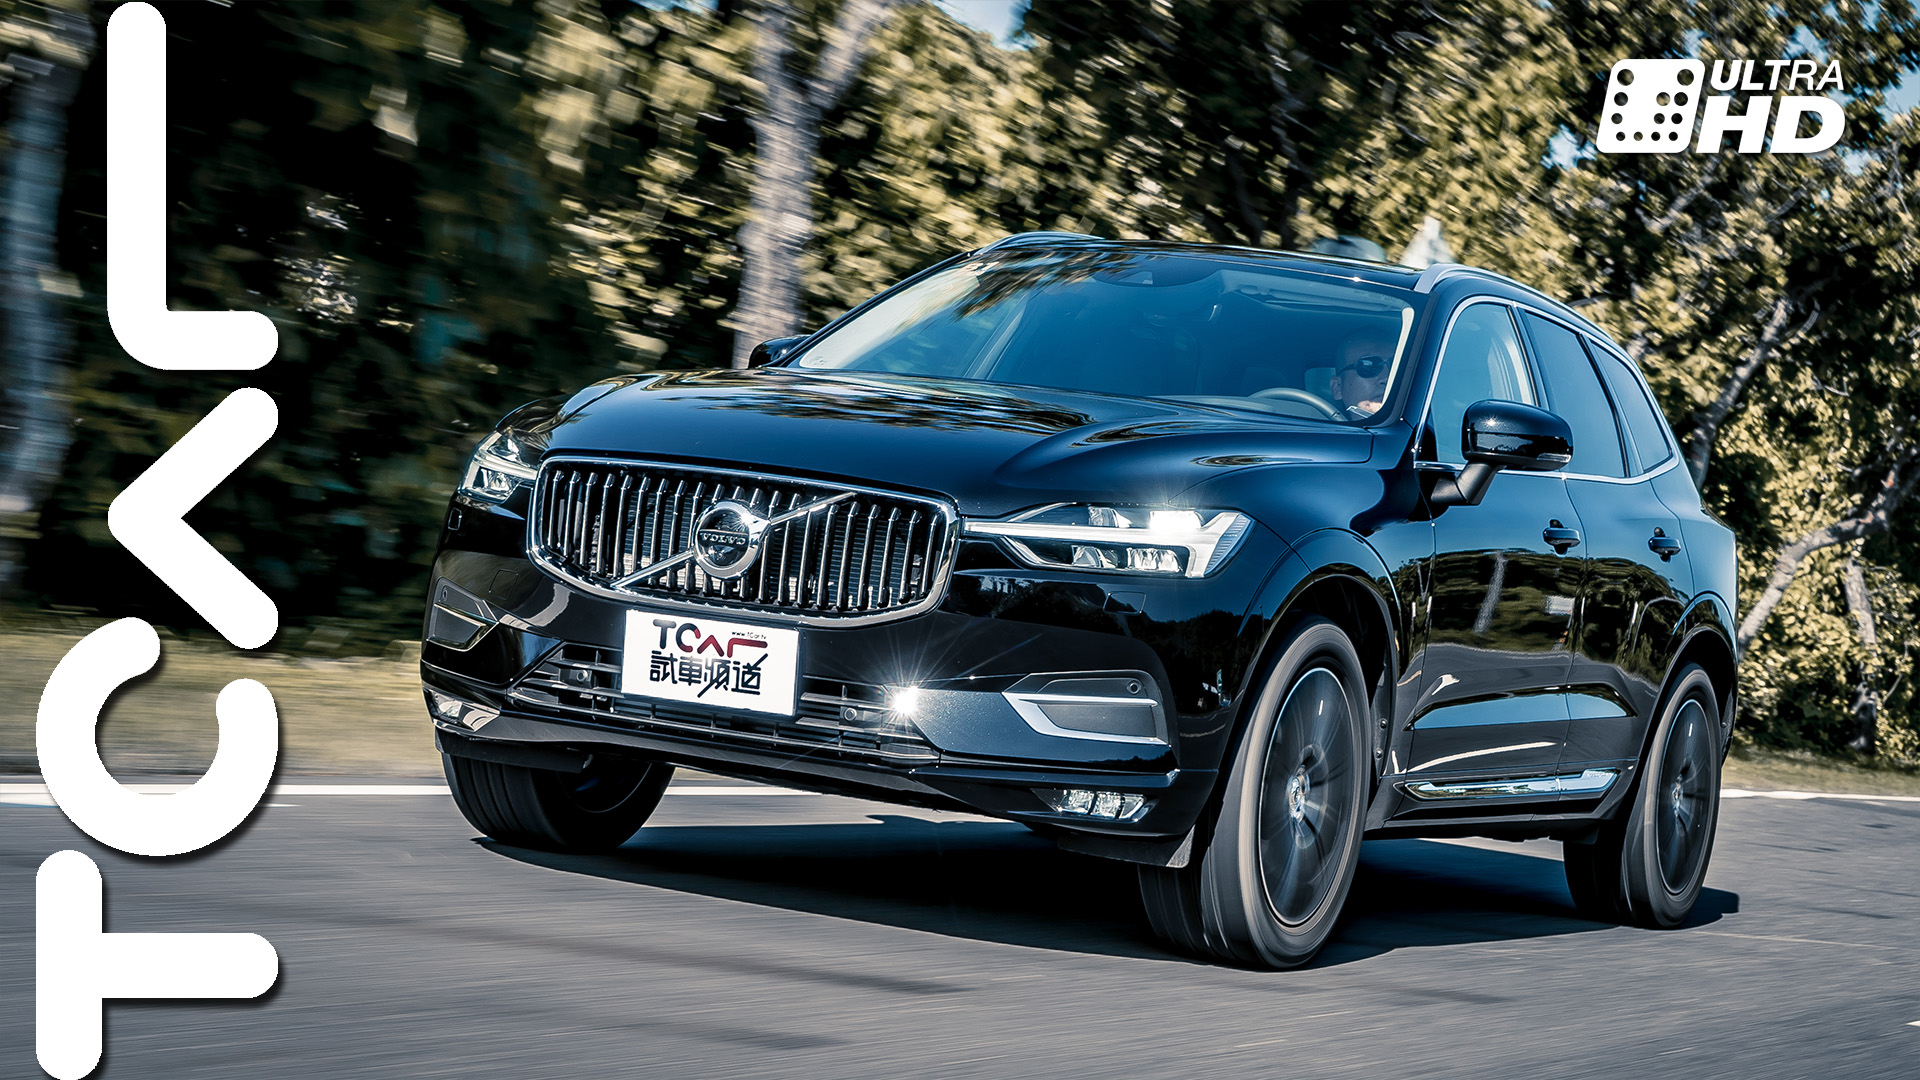 裝甲勁旅 Volvo XC60 T6 Inscription 新車試駕 - TCAR